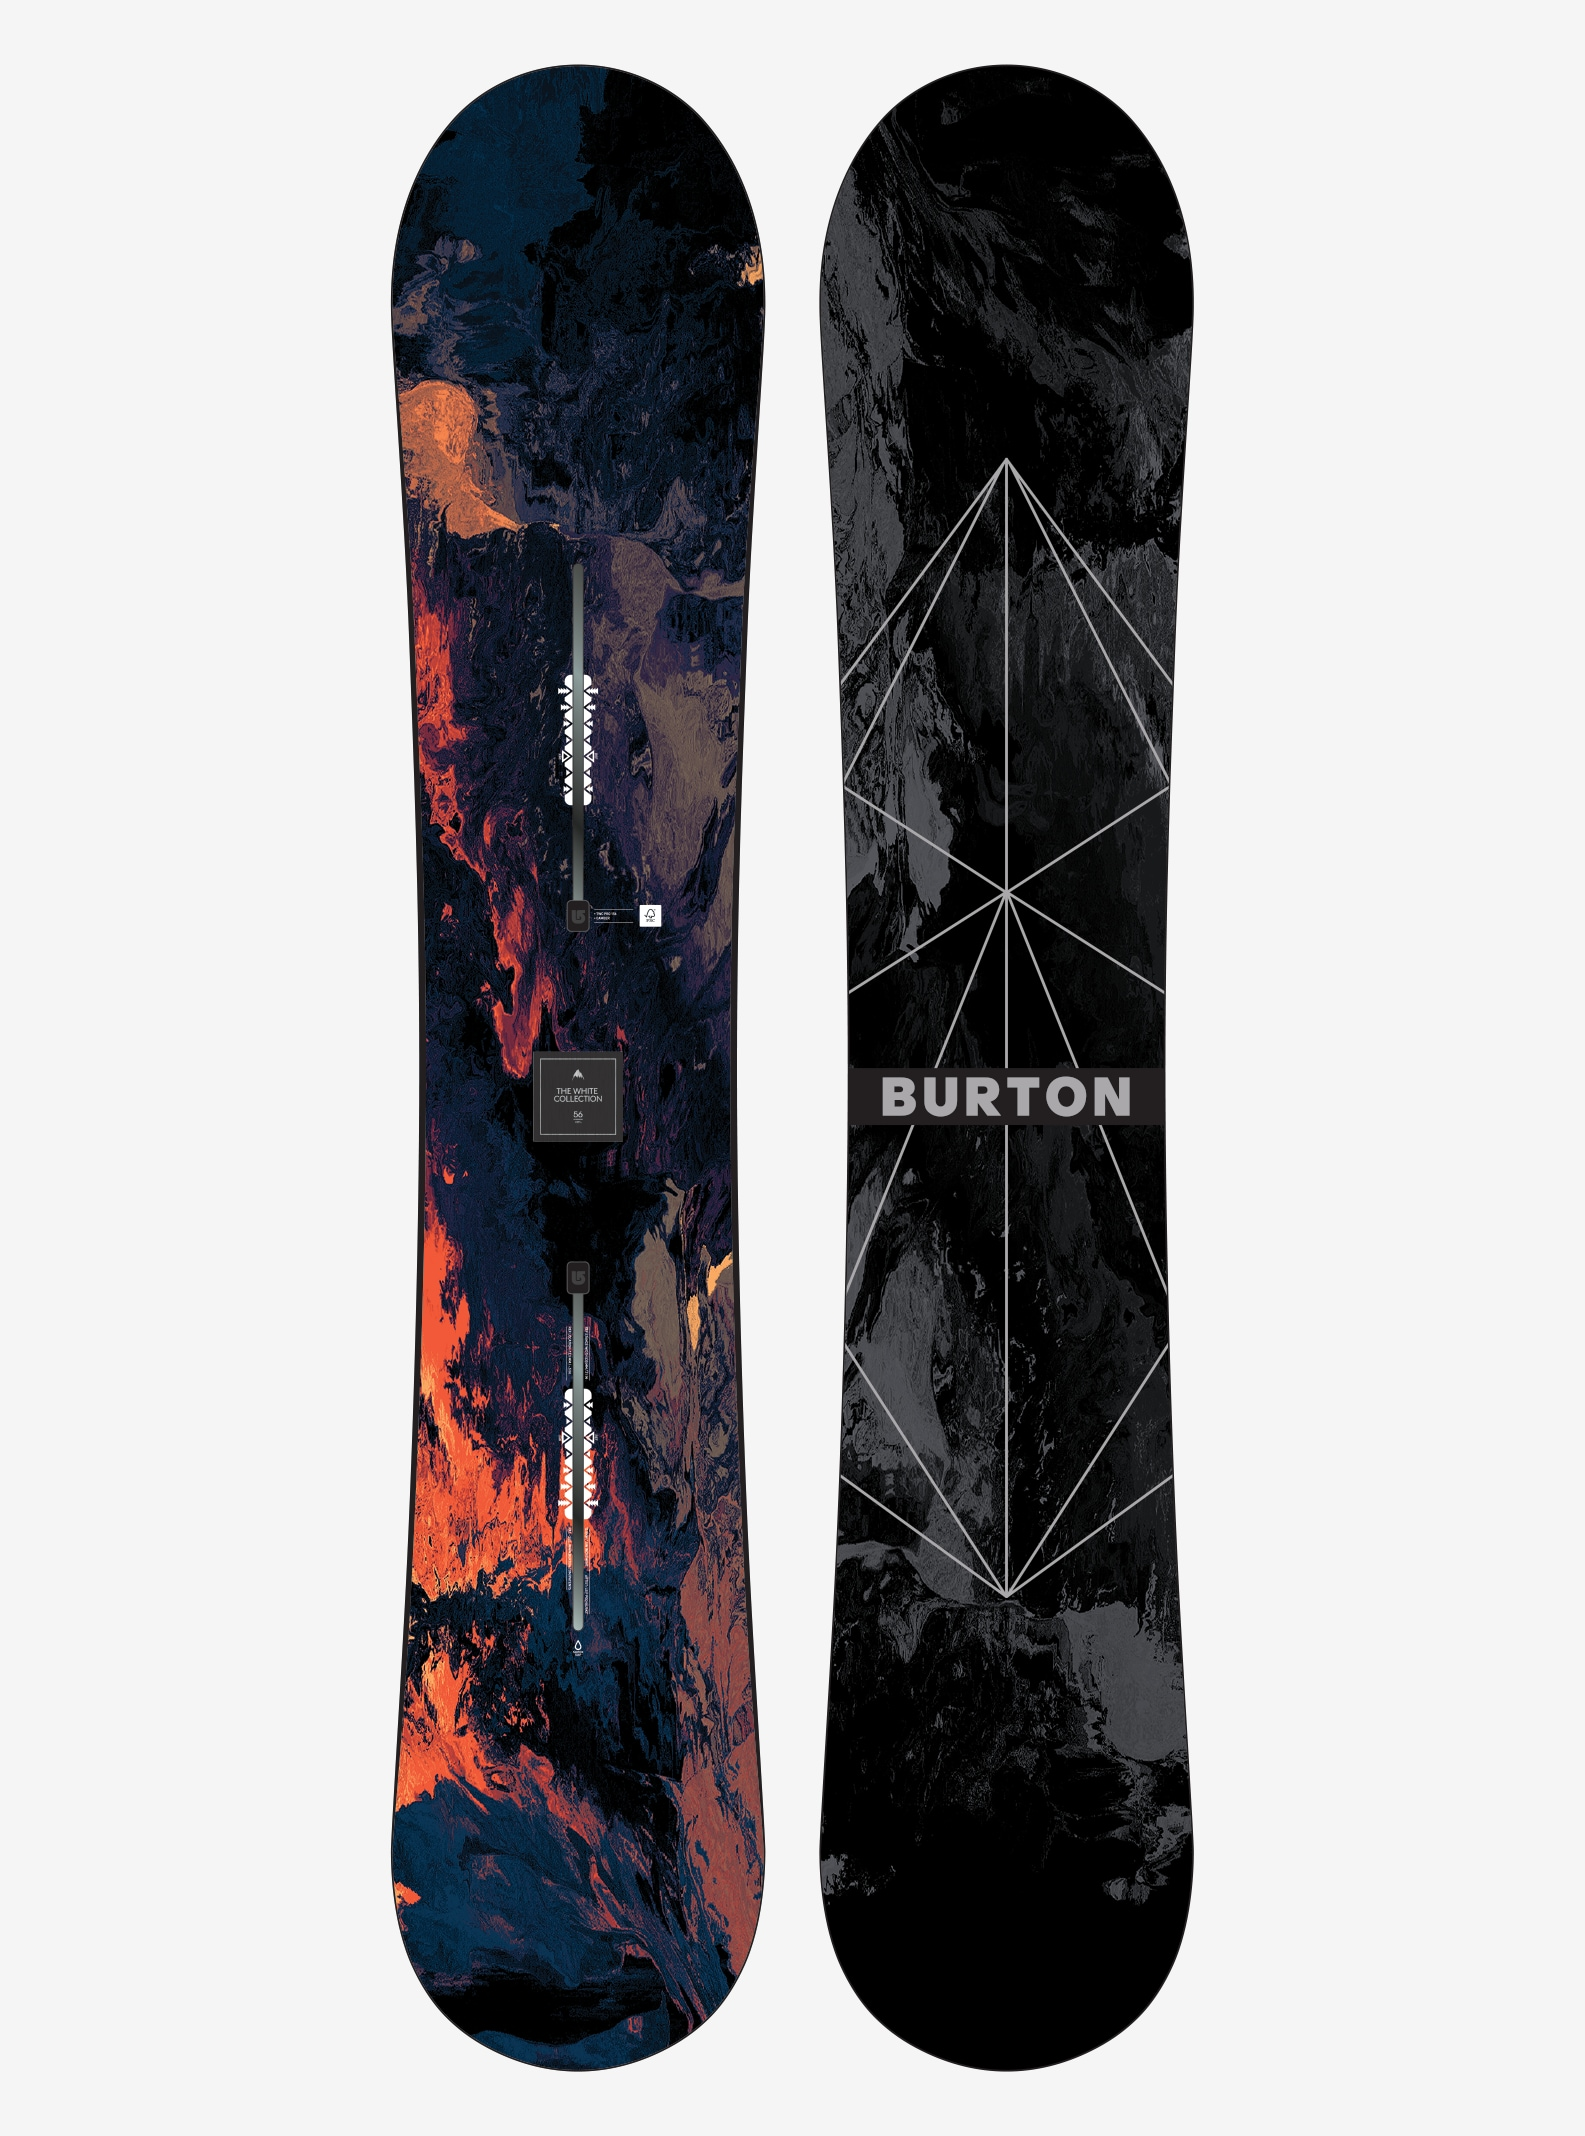 Men's Burton TWC Pro Snowboard shown in 156